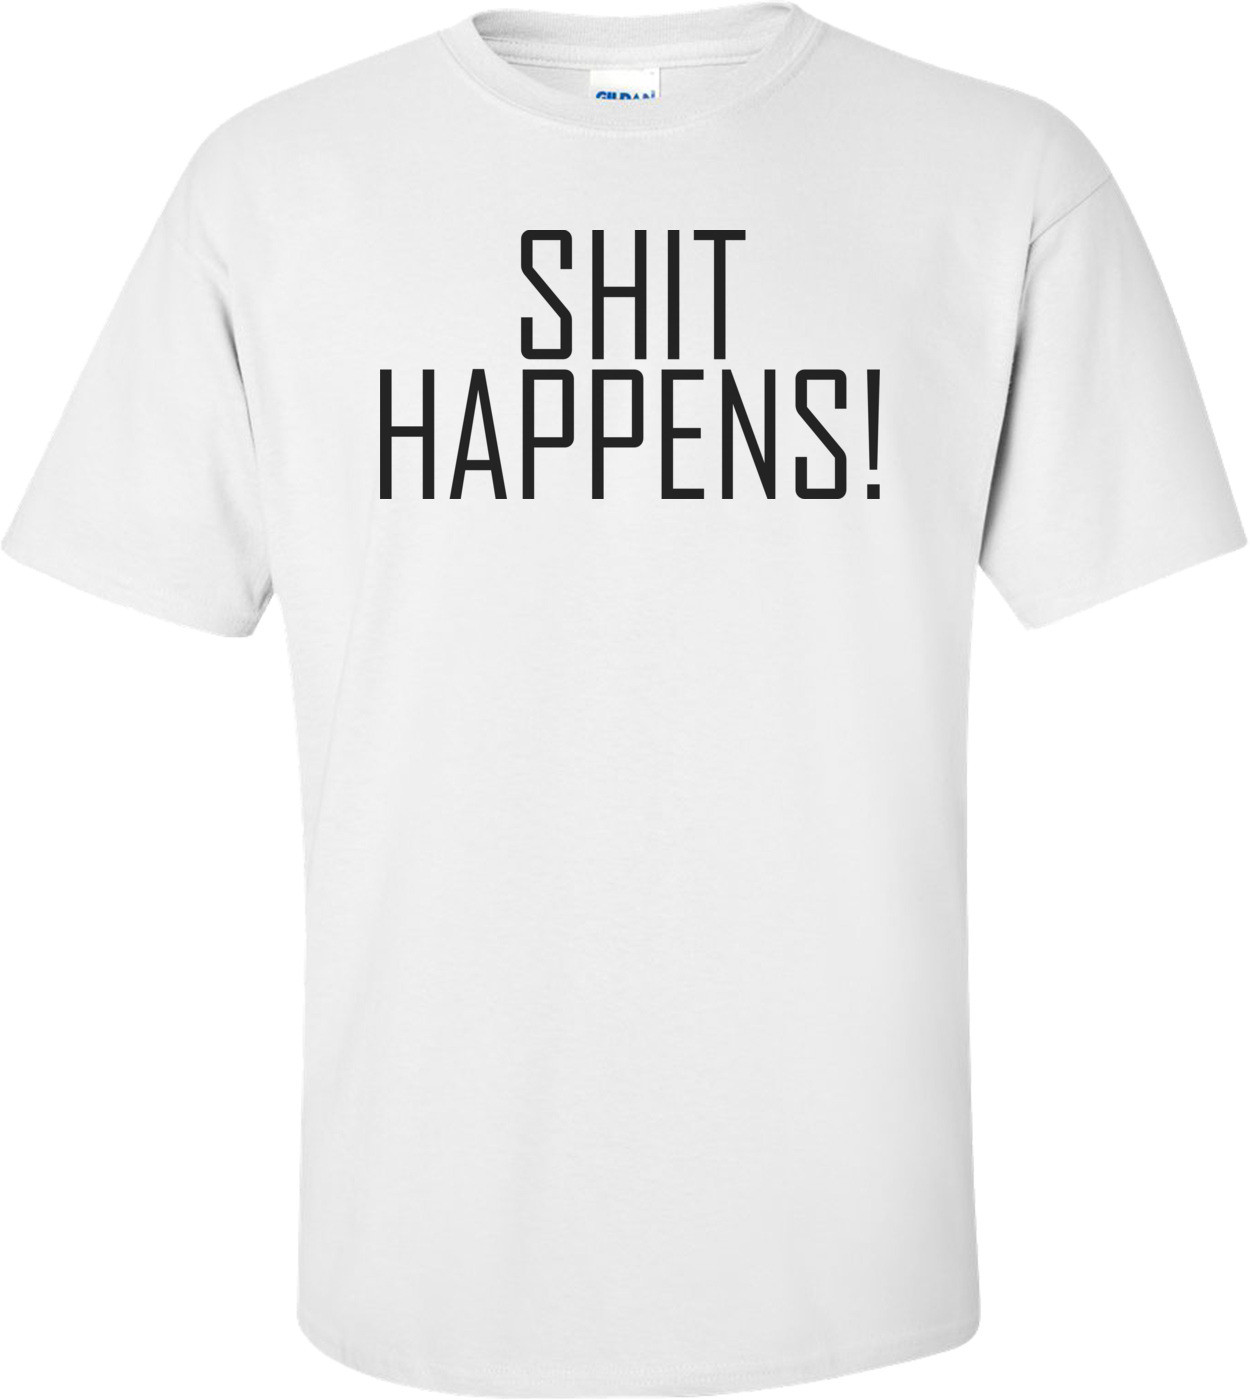 Shit Happens! - Funny T-shirt